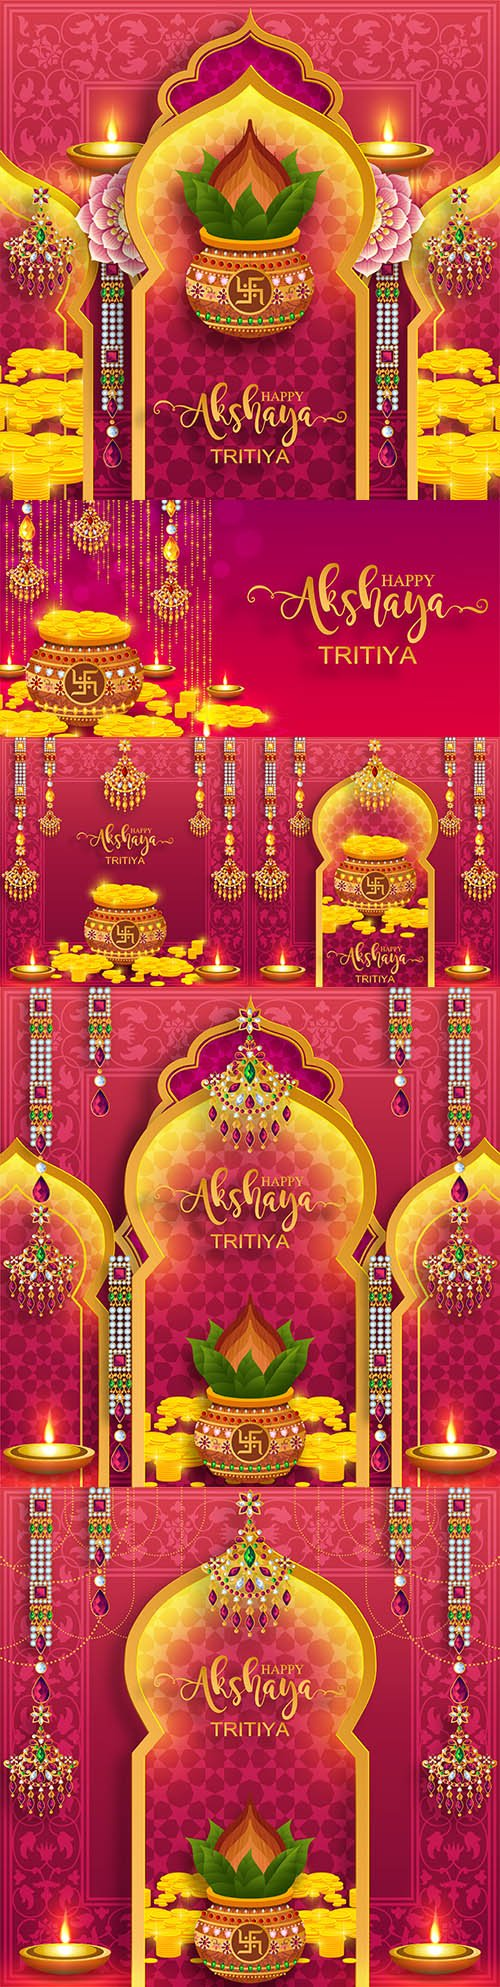 Happy Akshaya Tritiya festival decorative illustrations